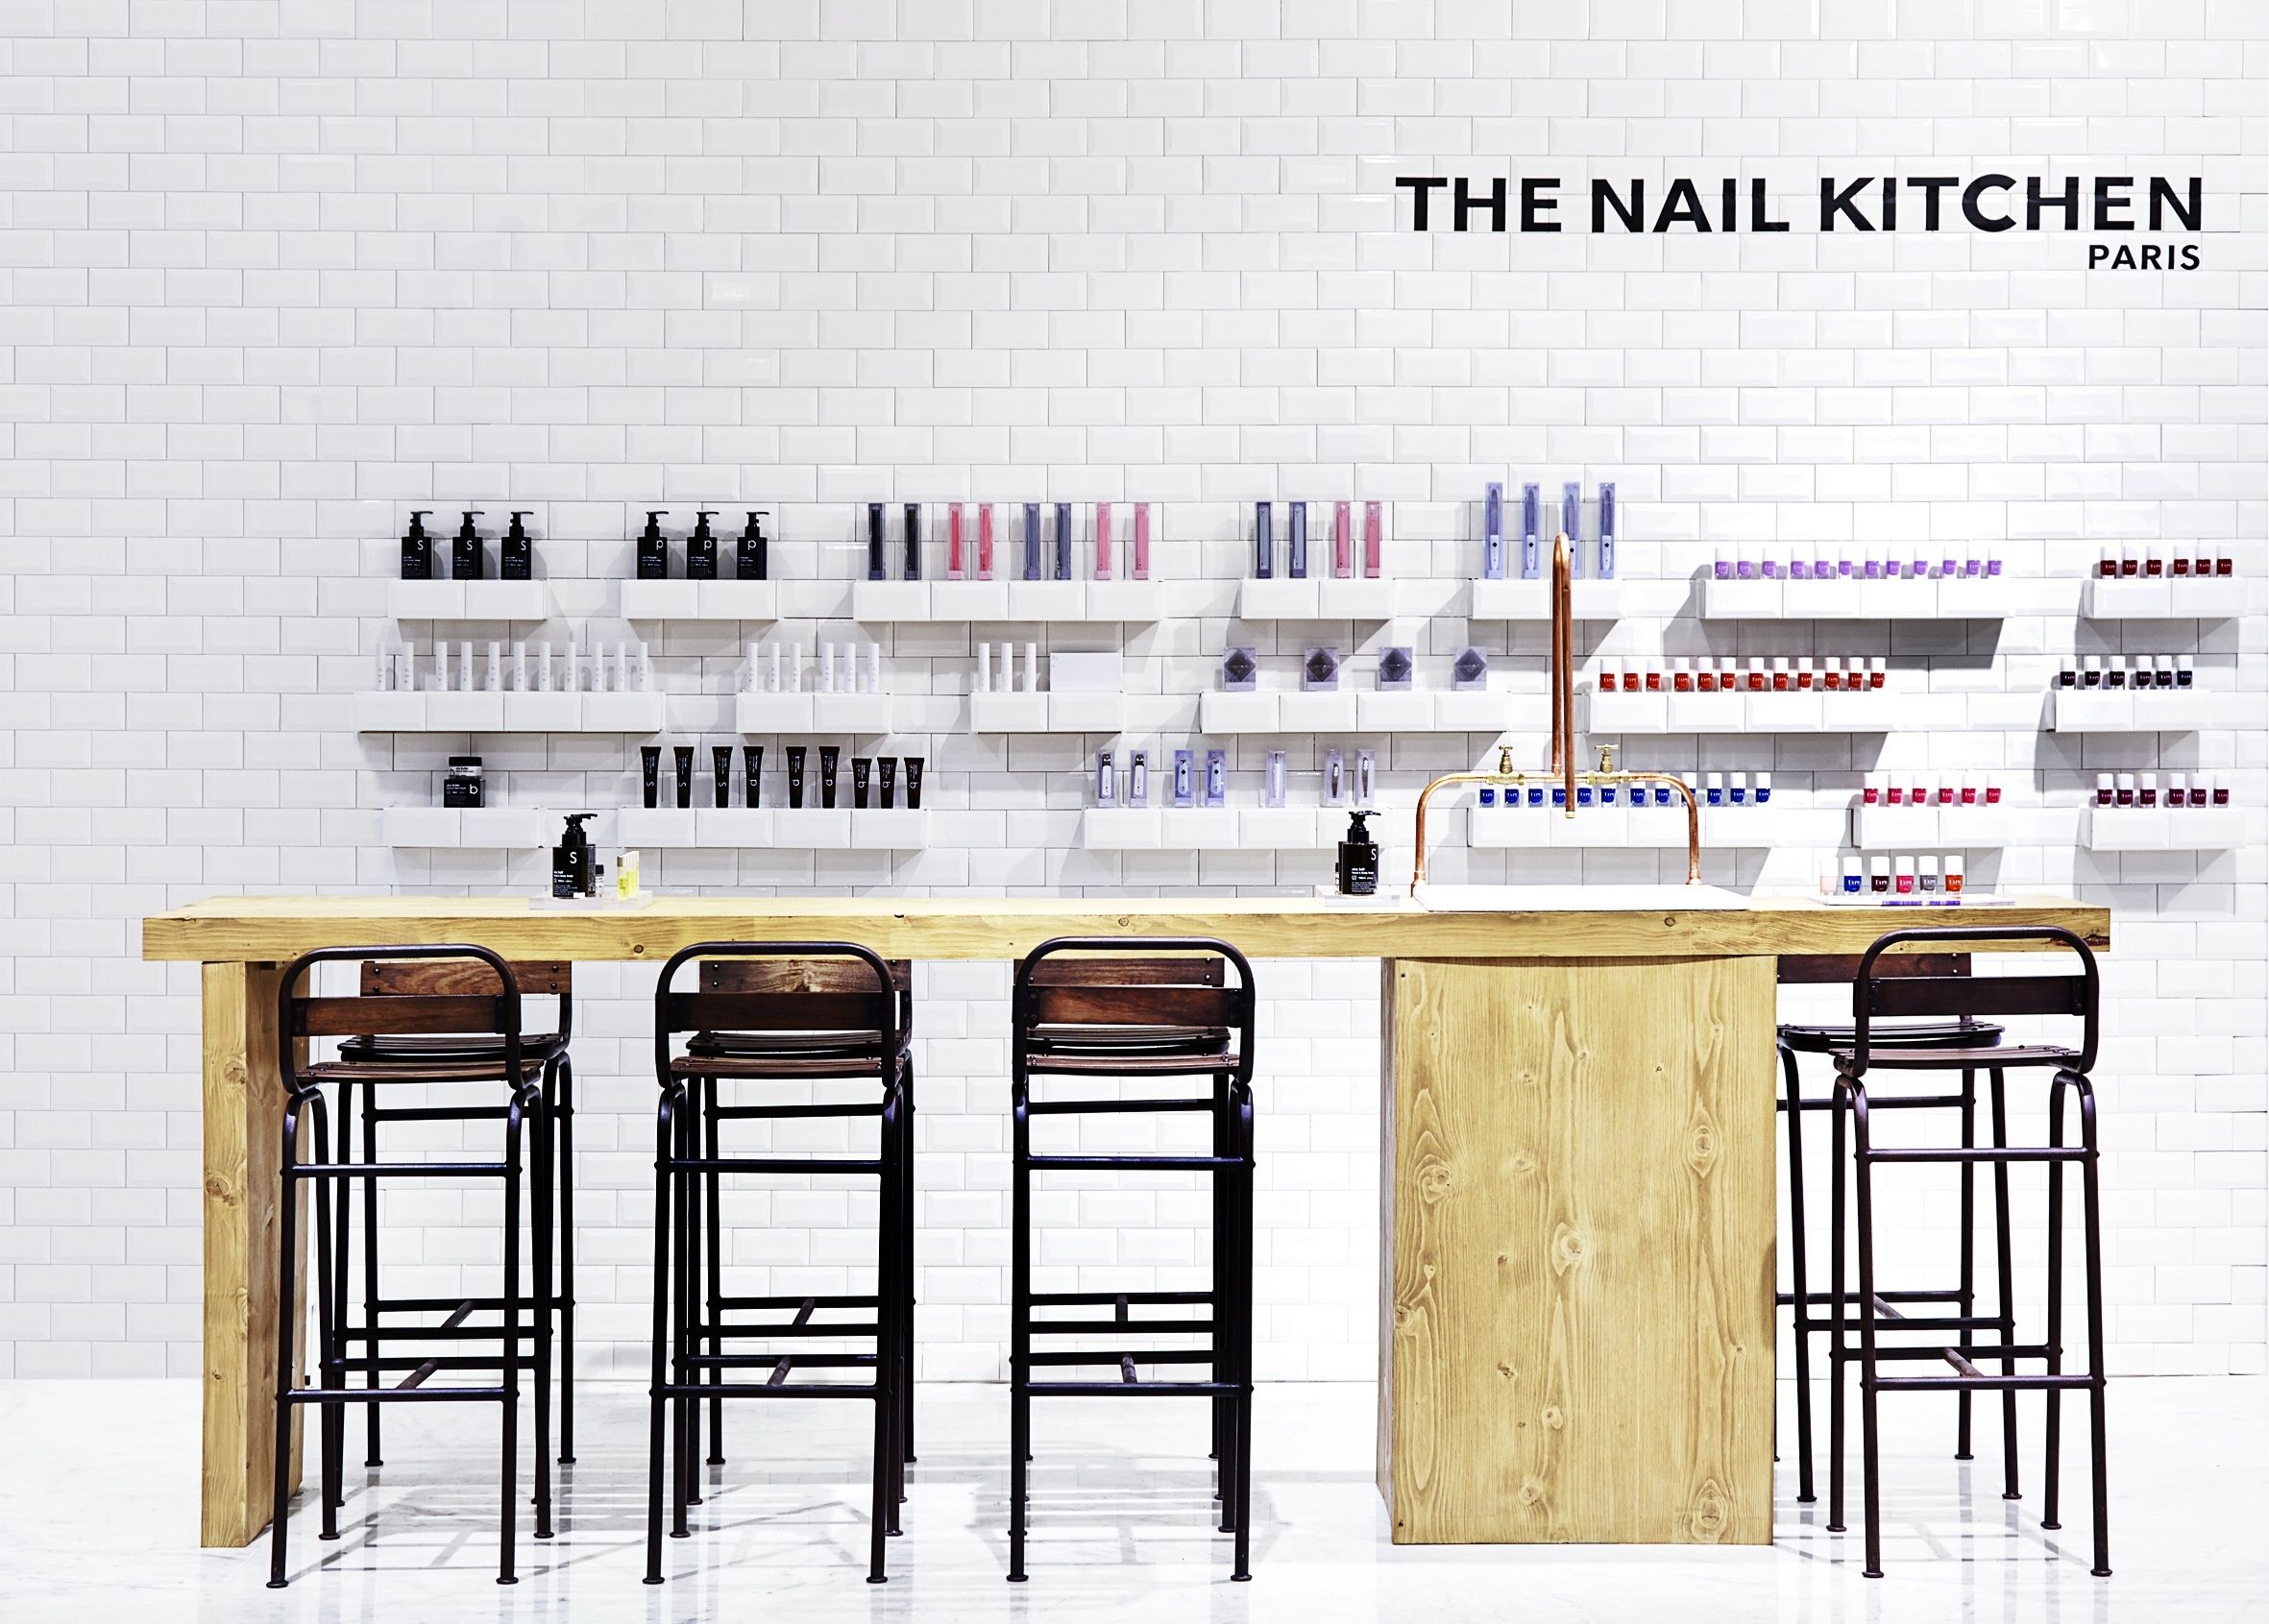 Salon furniture auckland at beauty bazaar - The Nail Kitchen Paris Eluxe Magazine Pinterest Magazines Kitchens And Salons